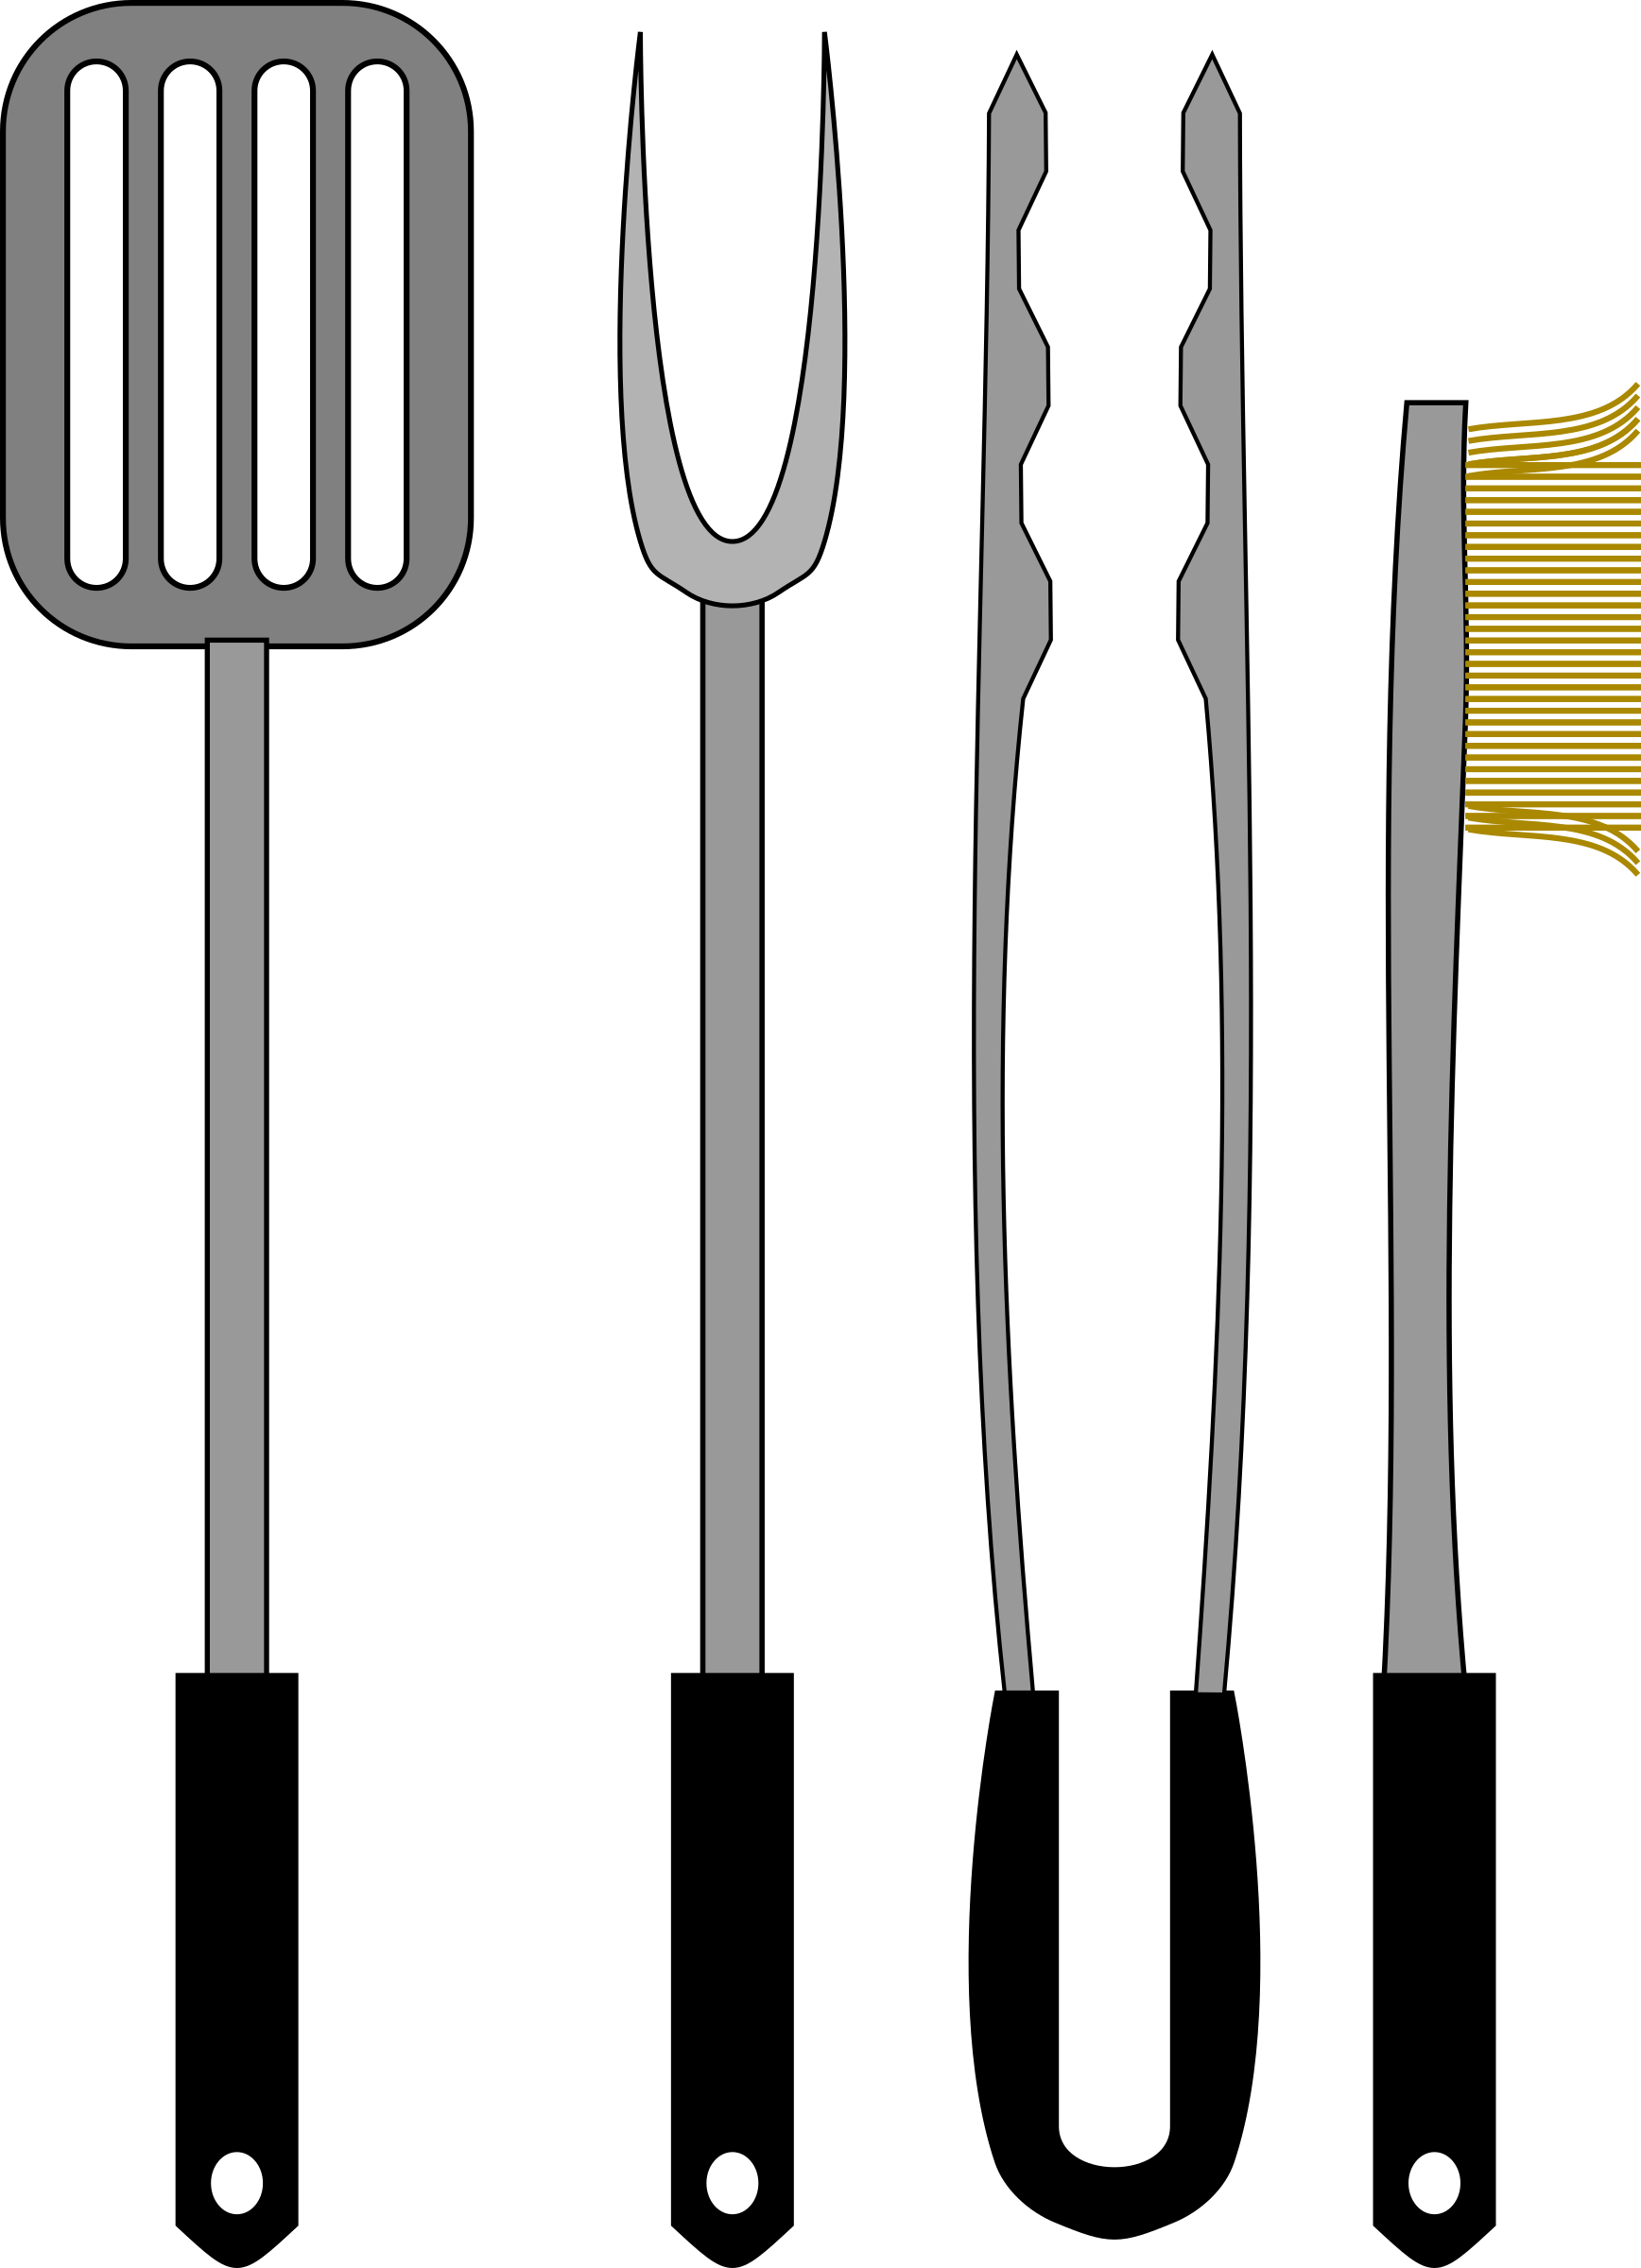 Barbecue Tools Vector Graphics Image Free Stock Photo